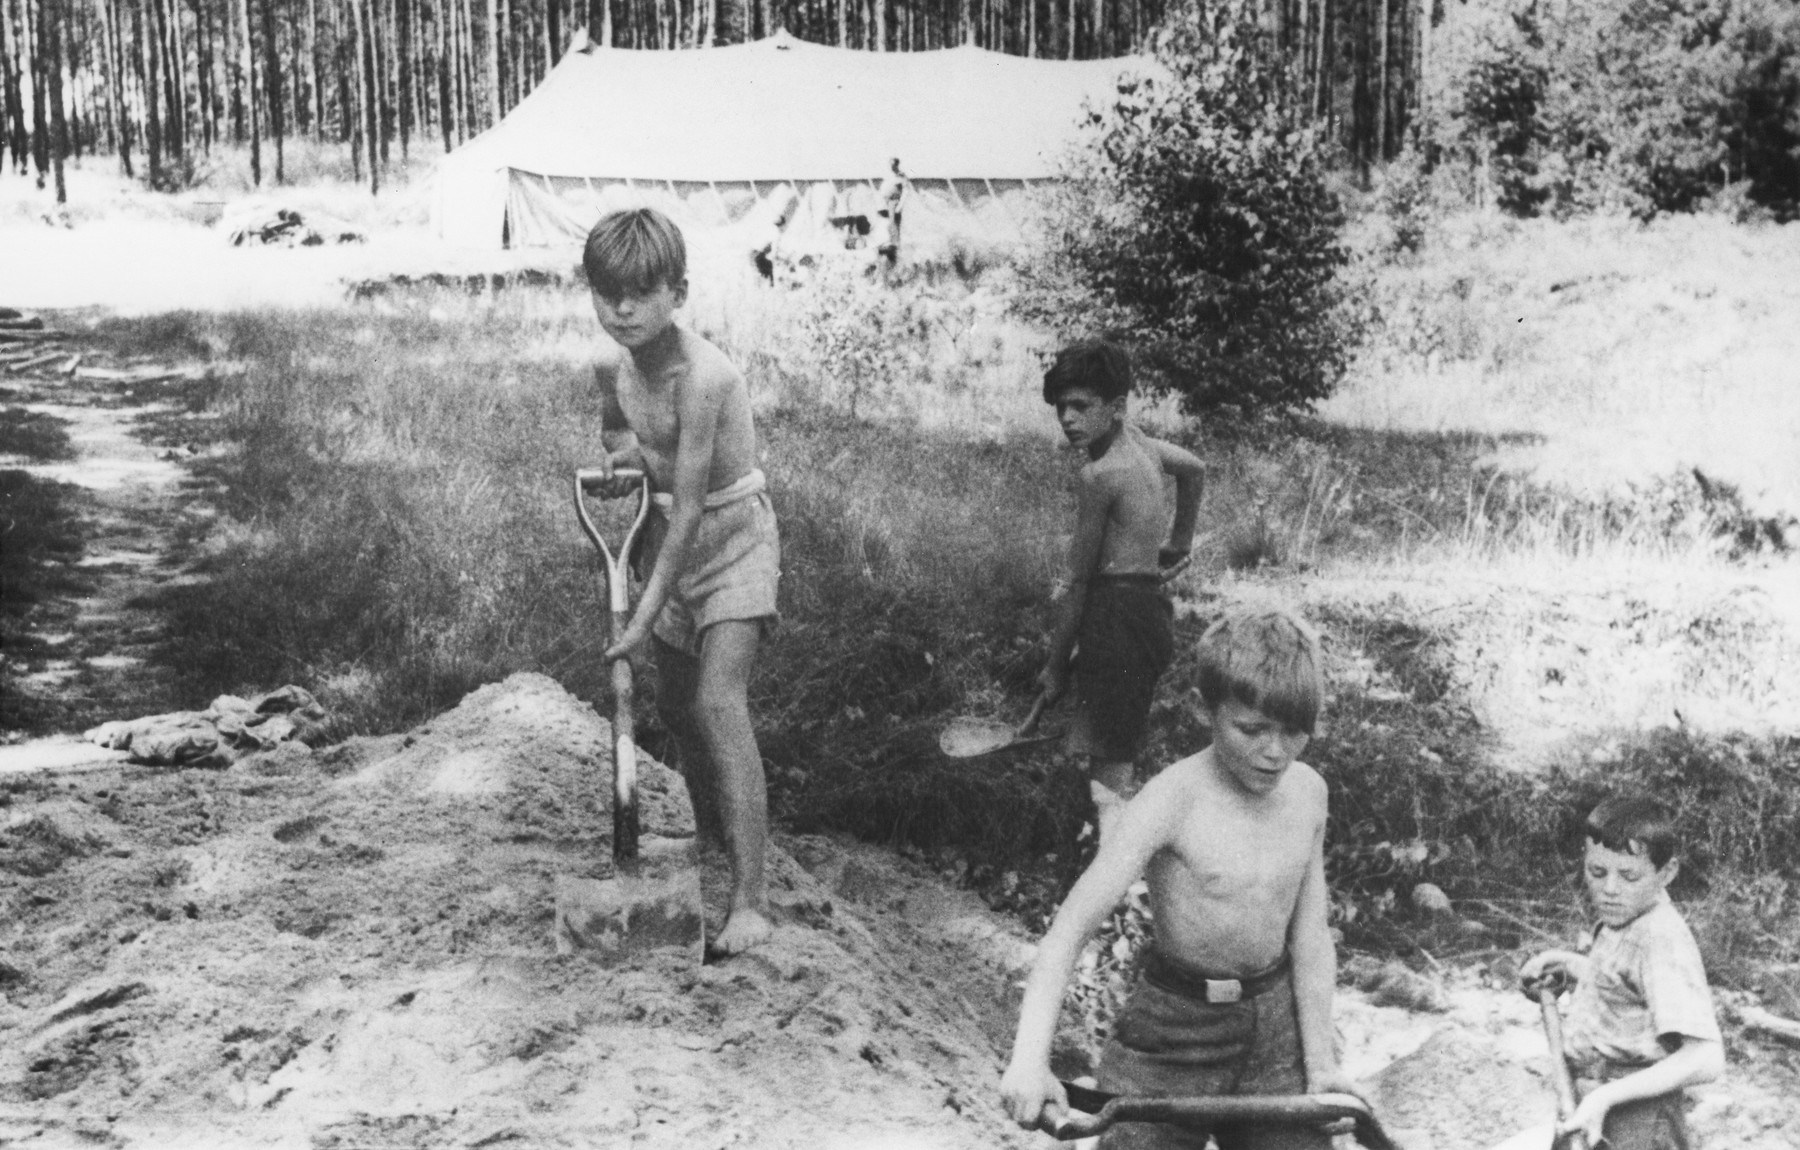 Four Jewish boys dig with shovels at a summer camp for Jewish DP children in the Grunewald Forest.